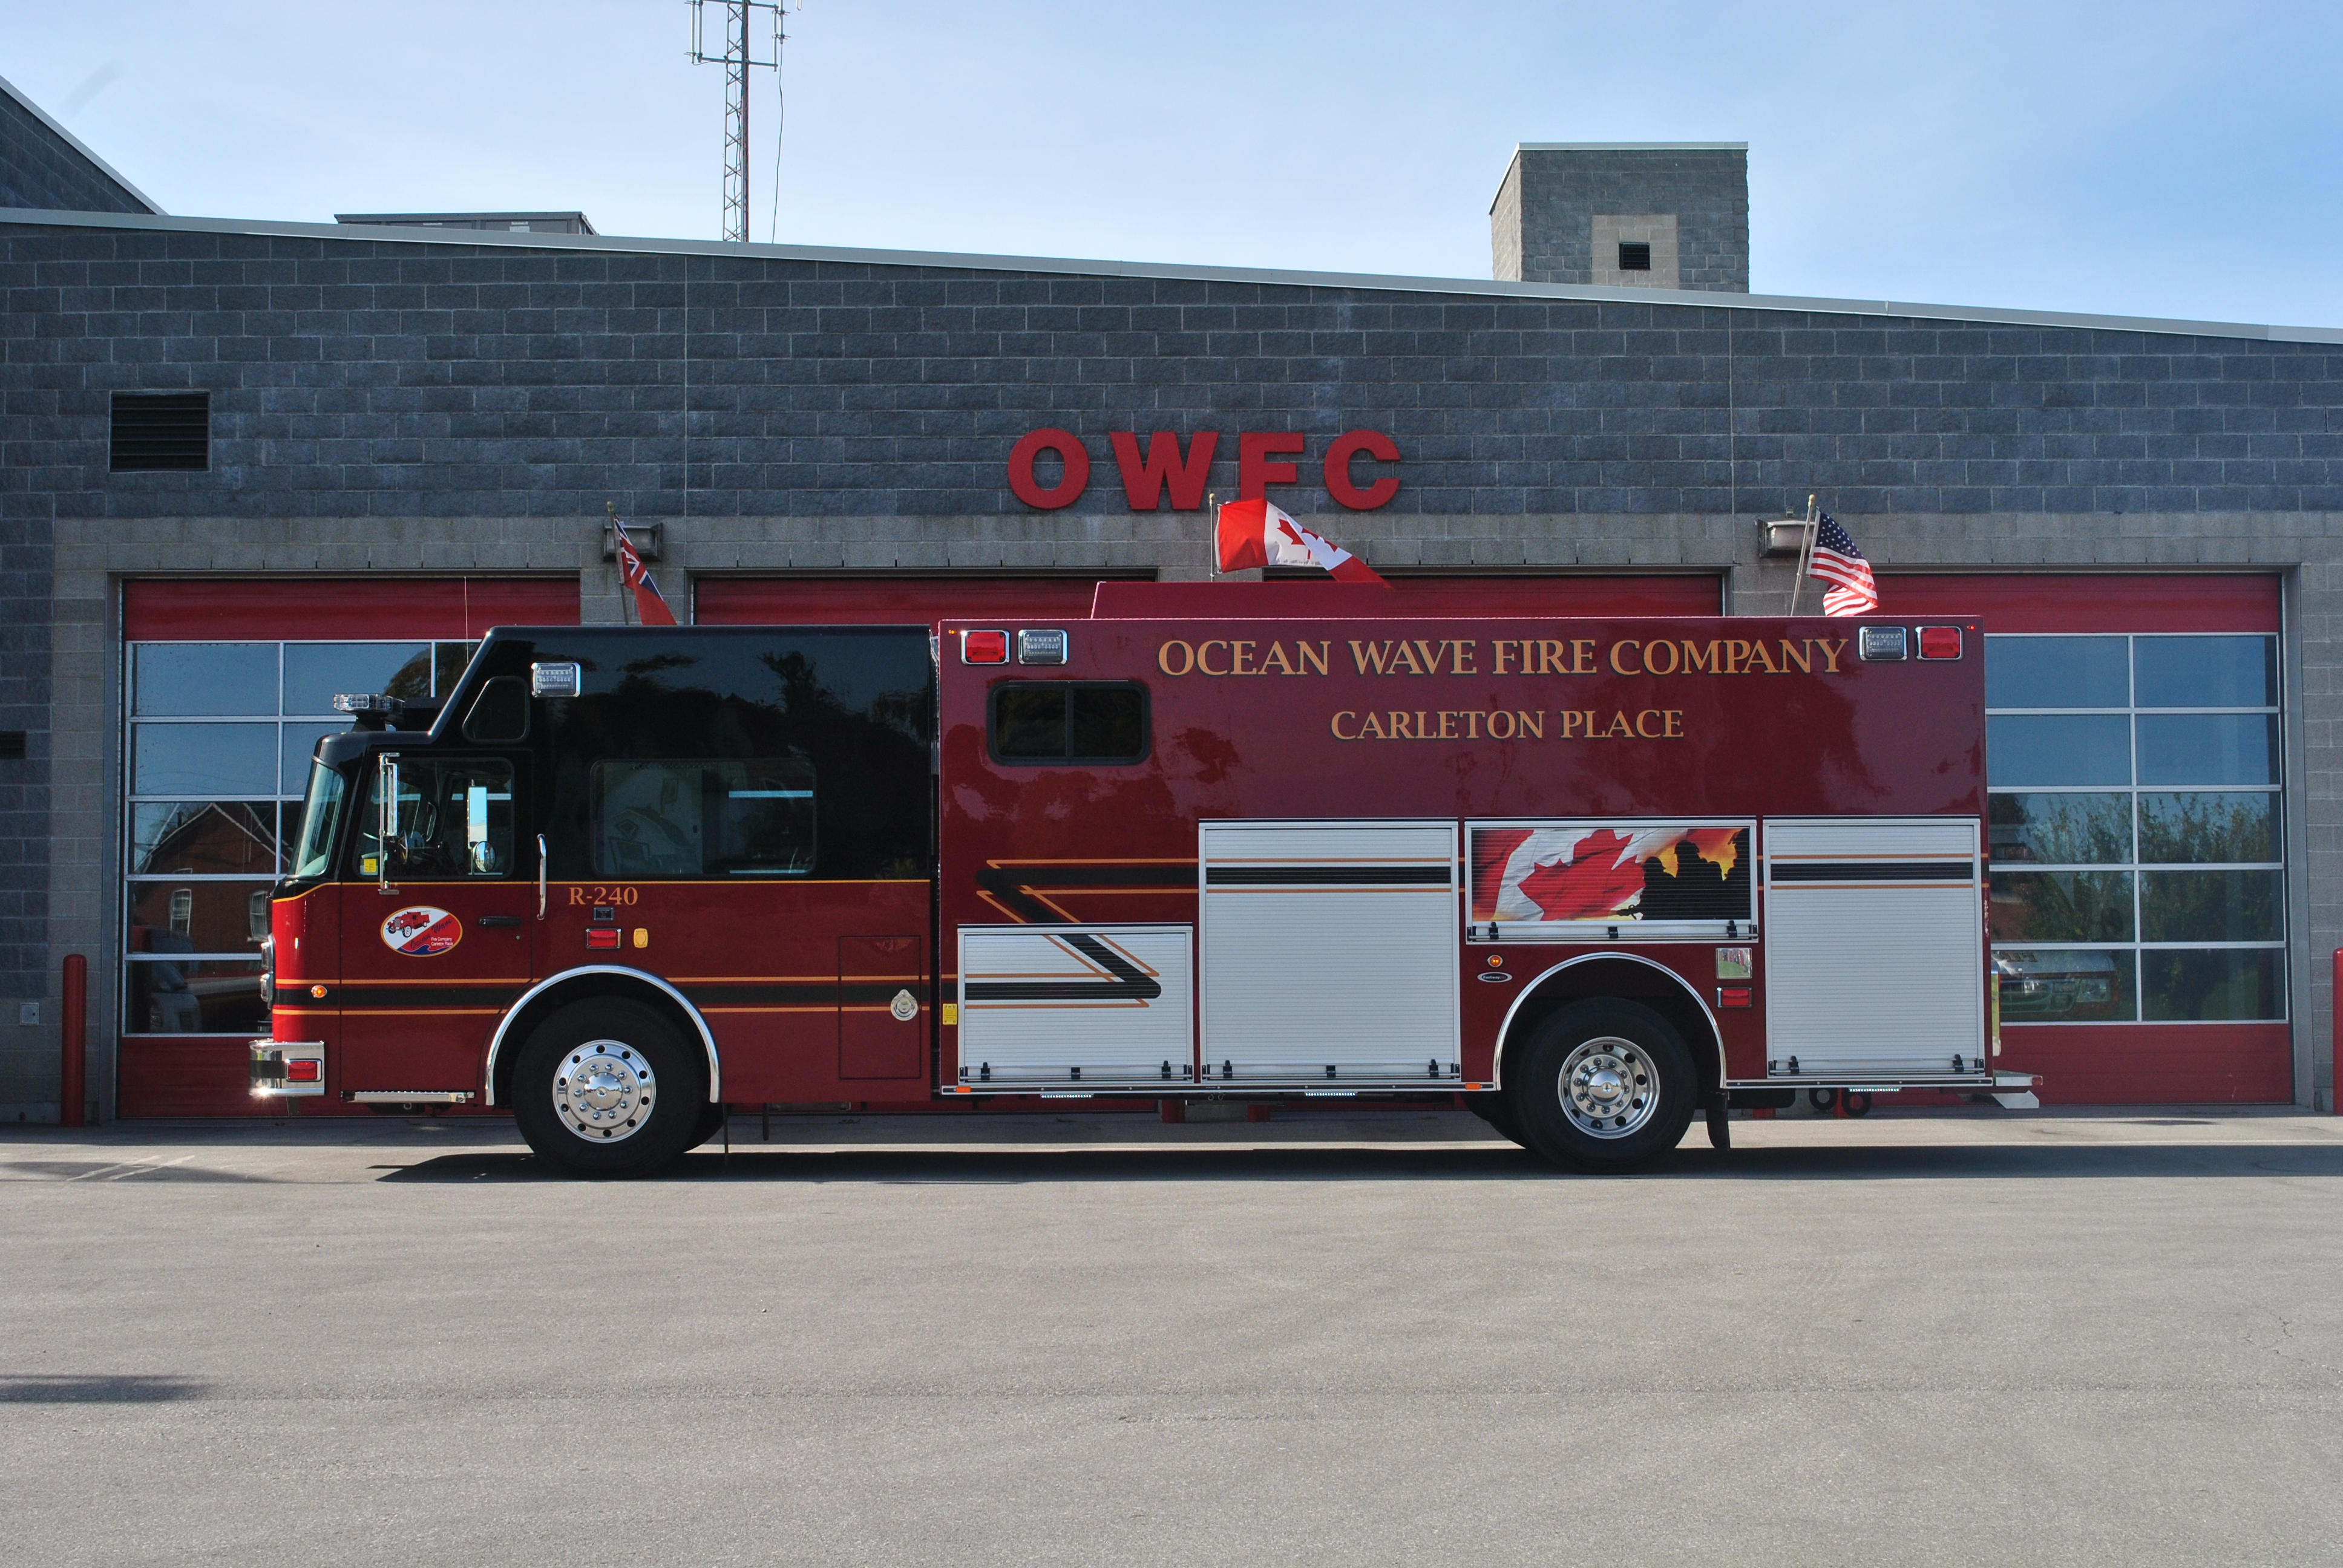 Image of Firetruck Rescue 240